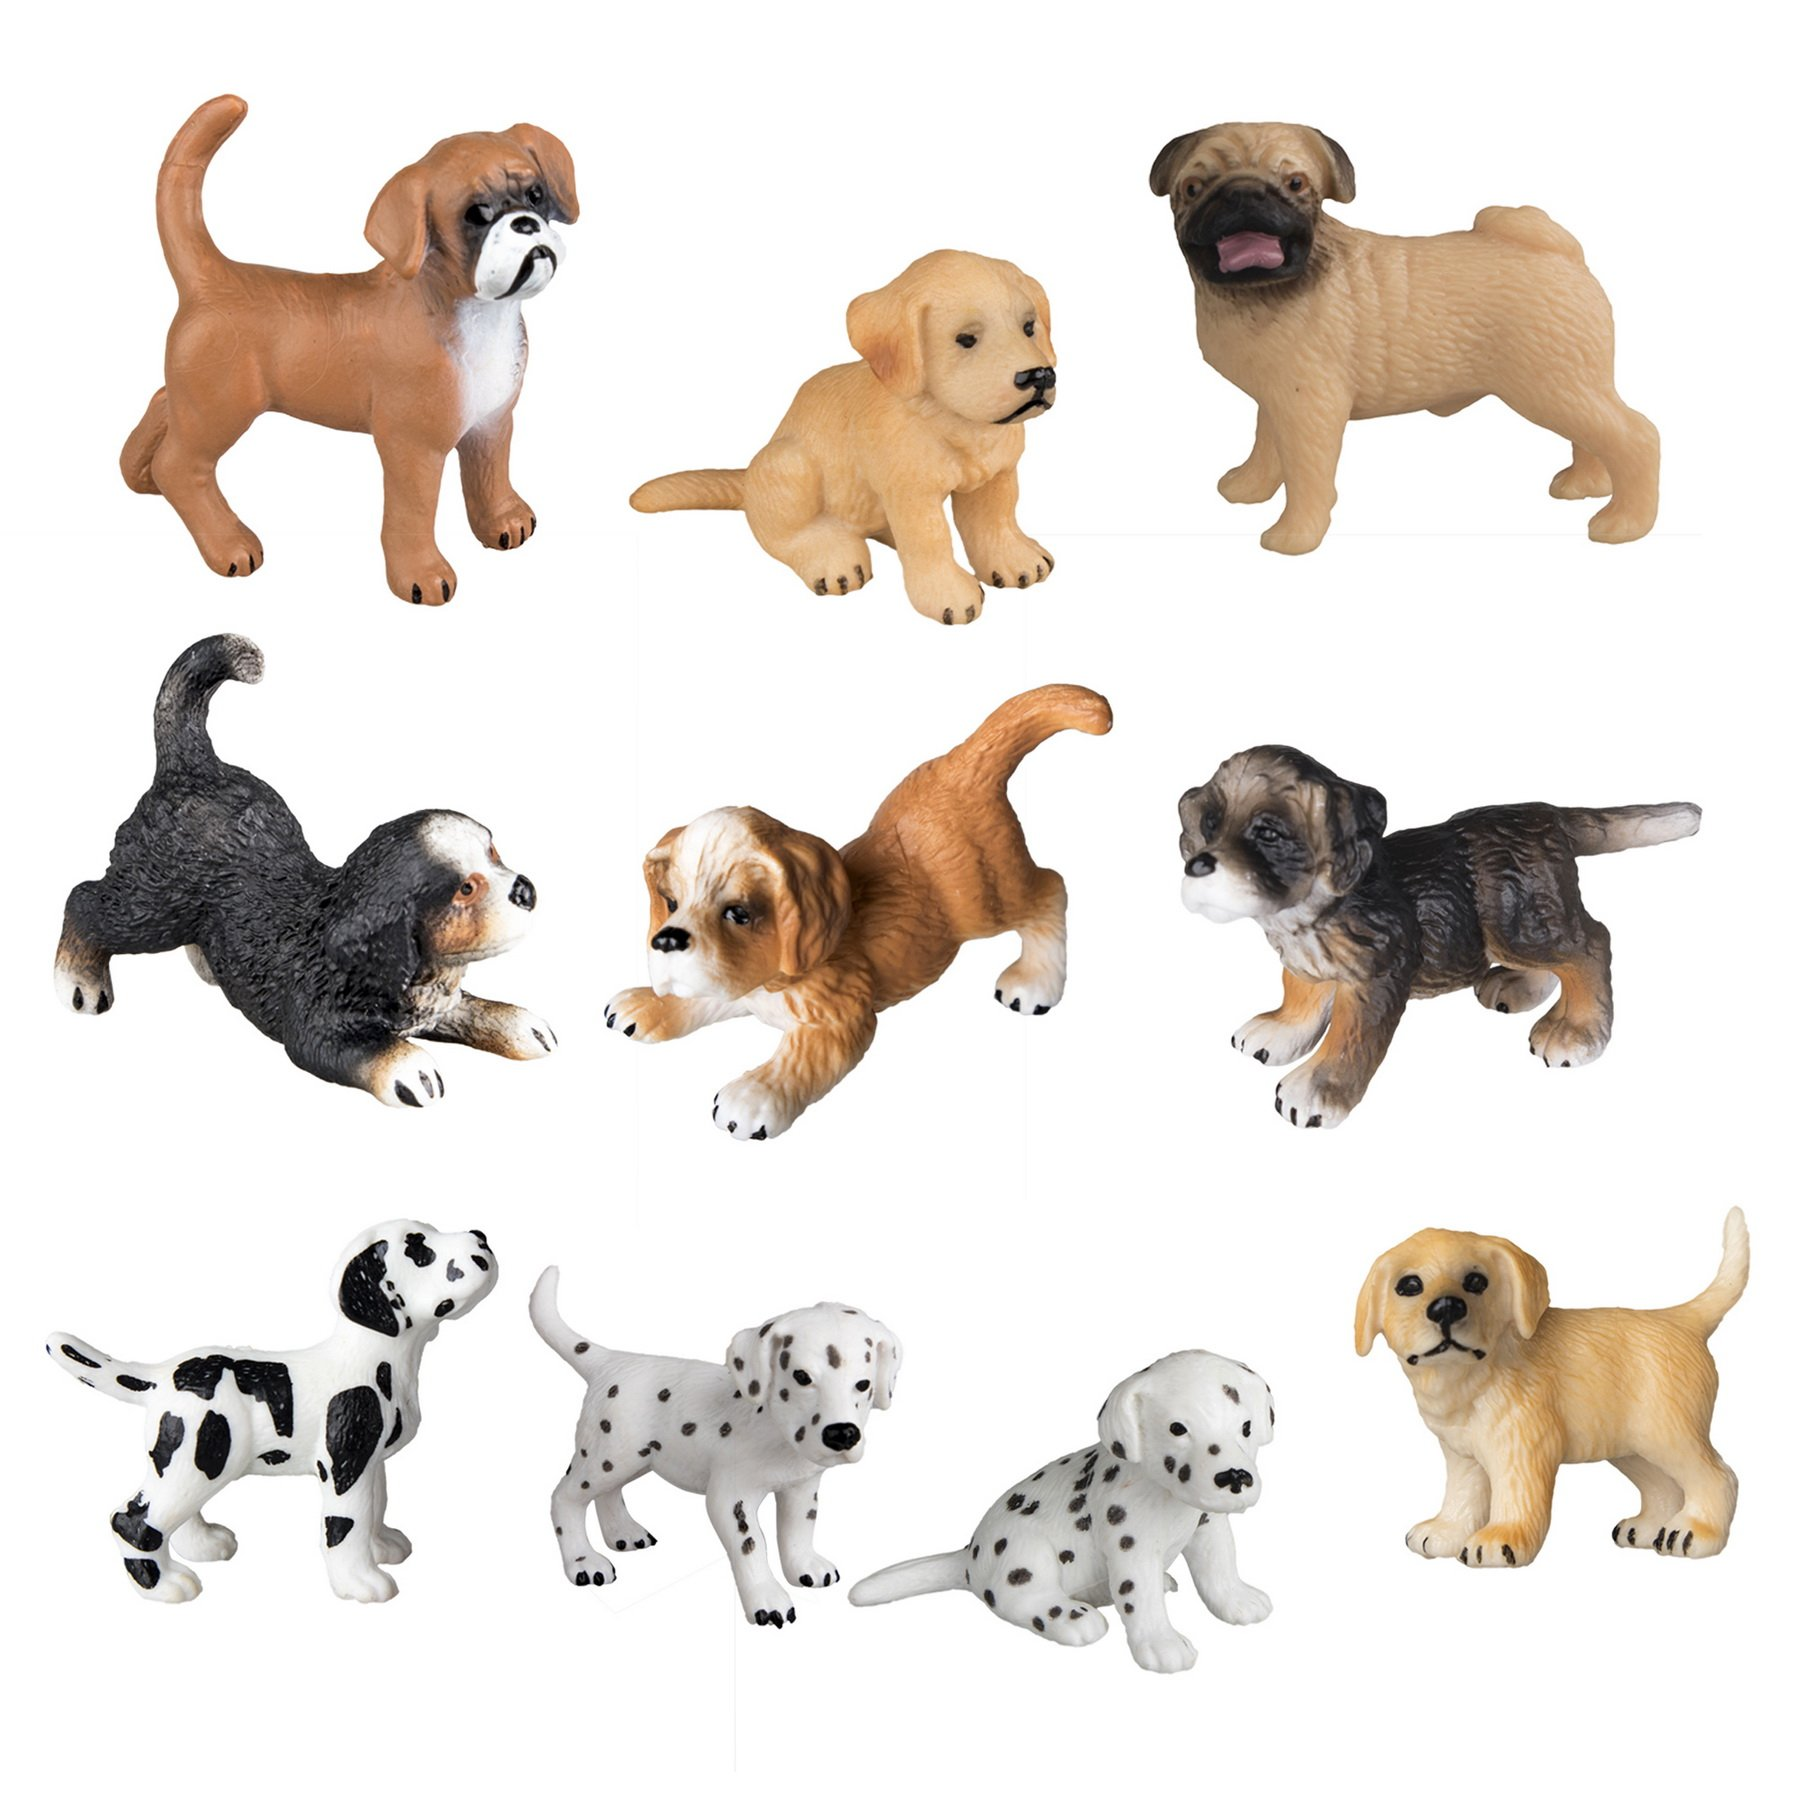 Toymany 10PCS Puppy Figurines, Realistic Detailed Cute Puppy Figures, Hand Painted Emulational Dog Figurines Toy Set For Kids